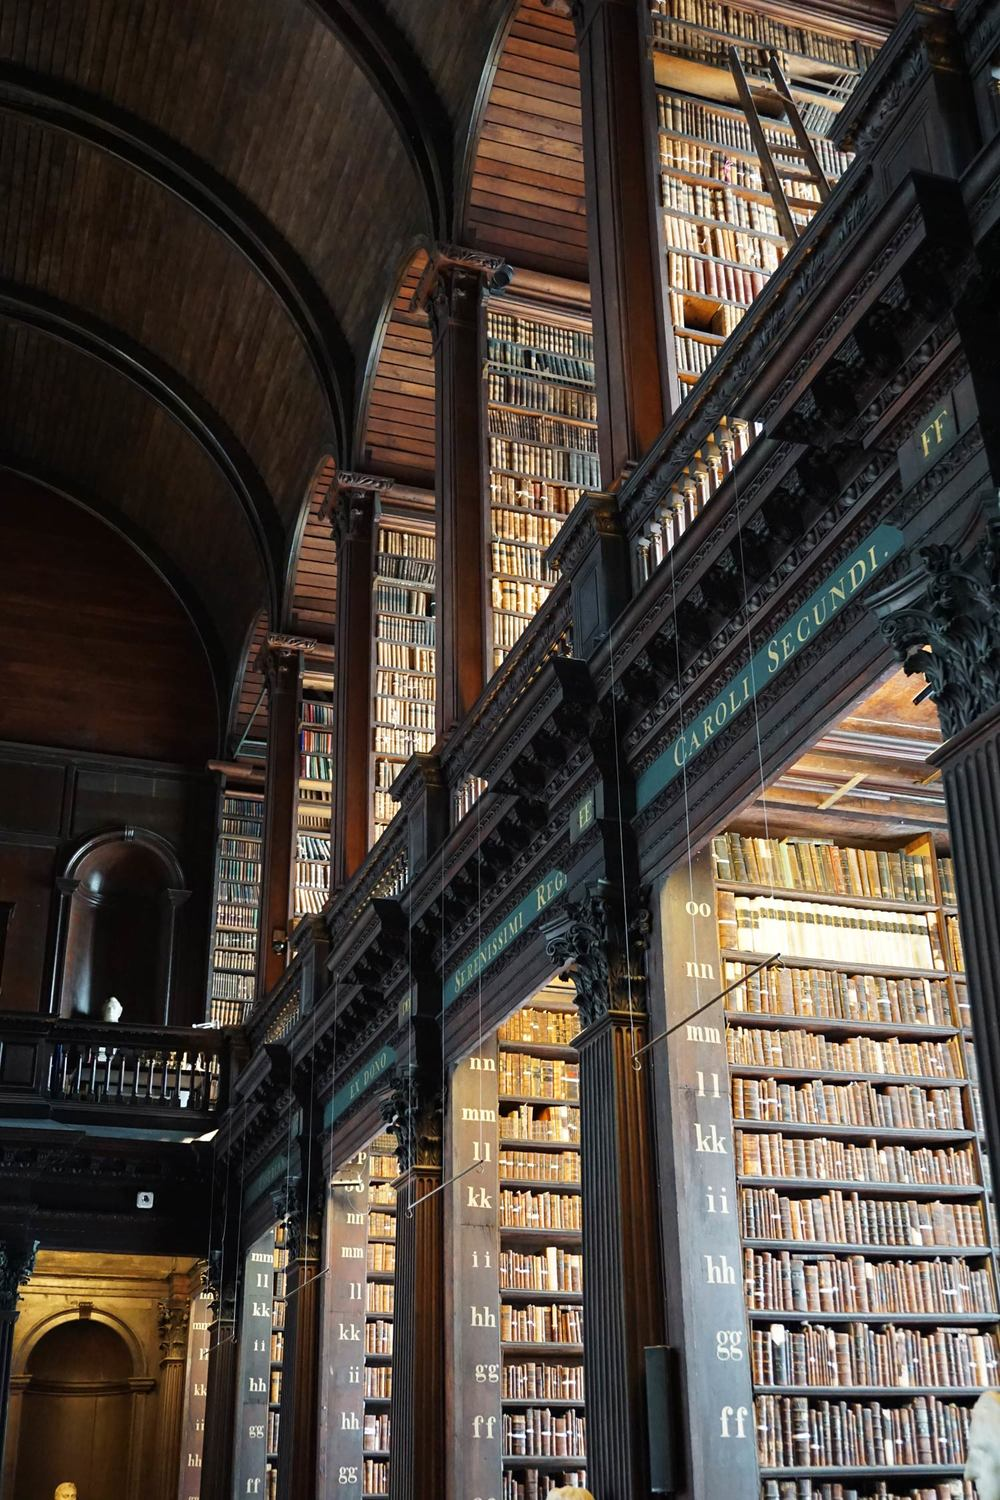 The Old Library, Dublin, Ireland